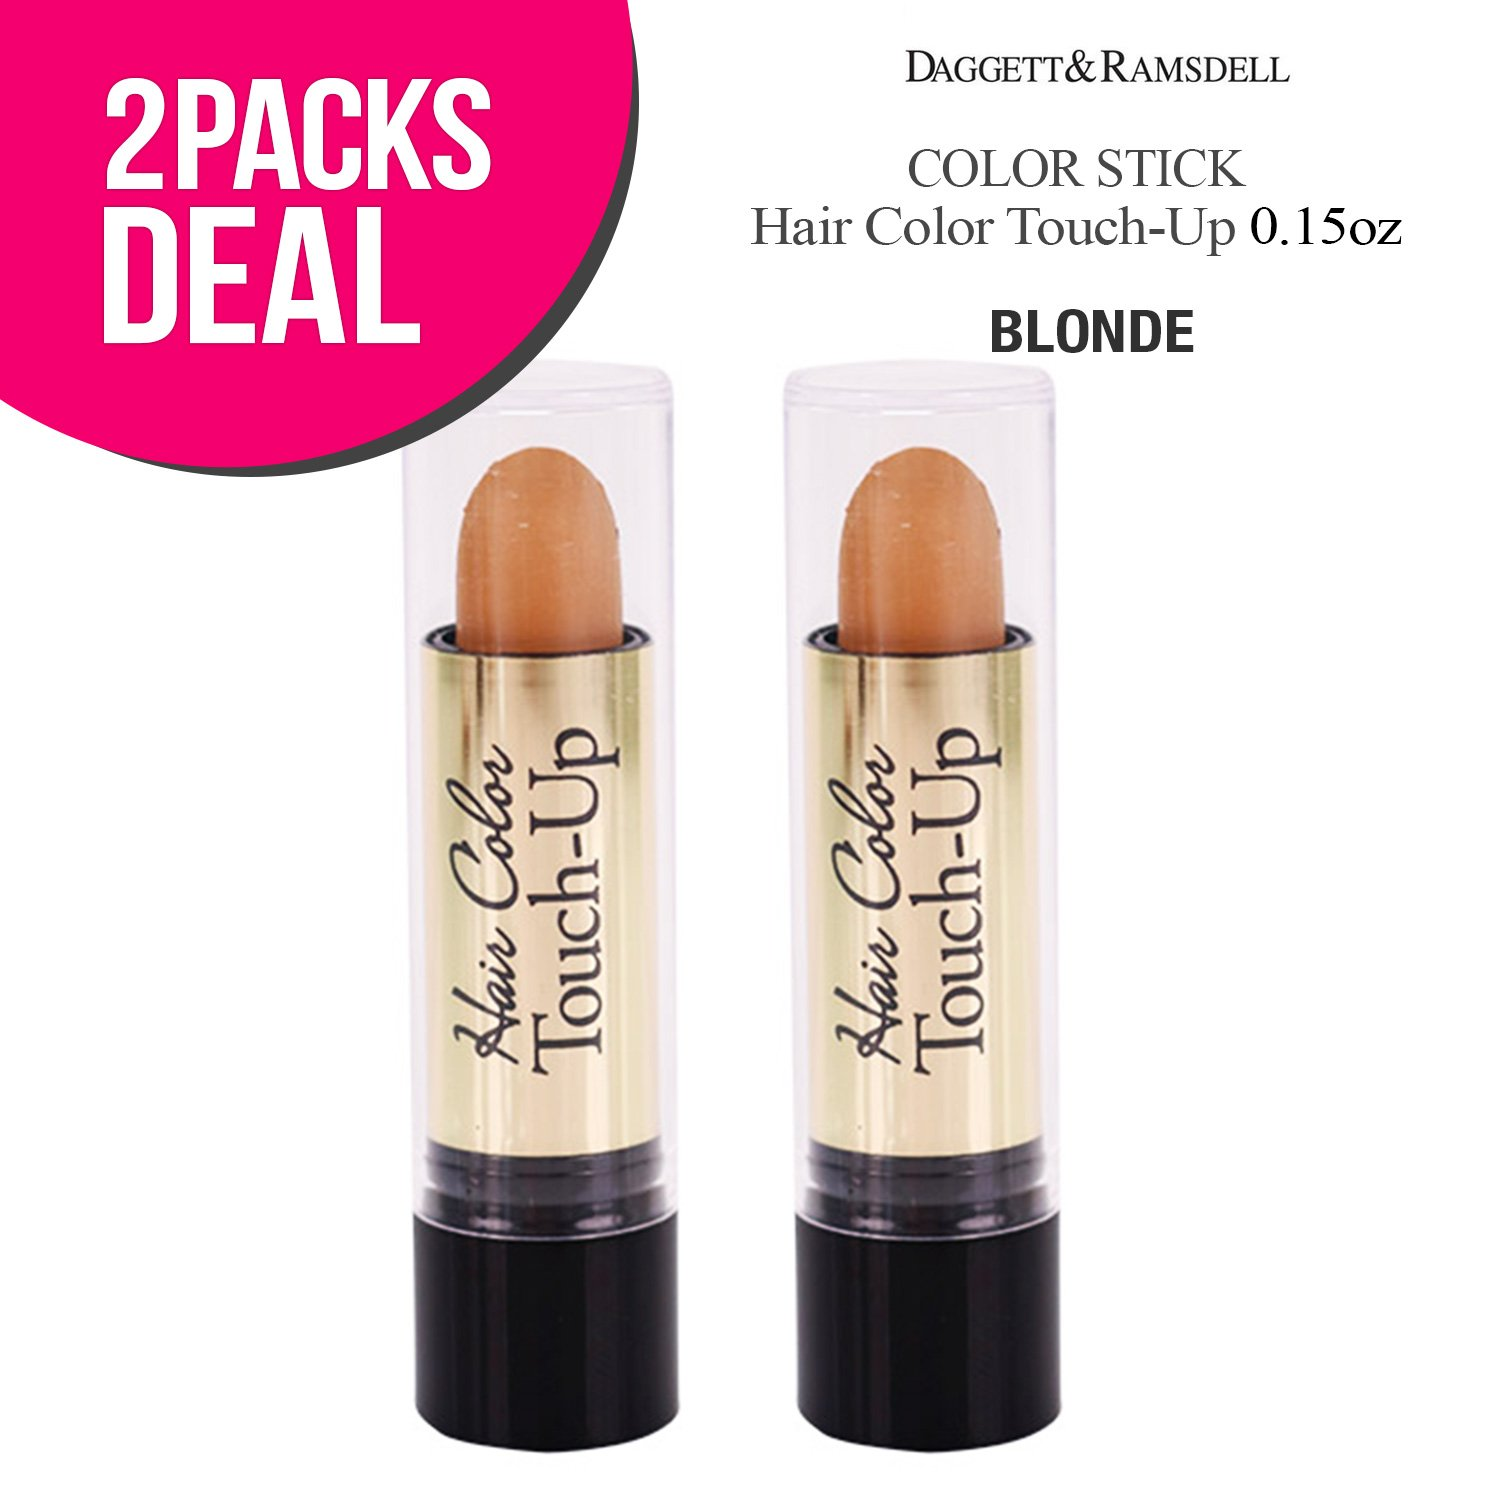 (2 PACK) Root Color Cover Stick Hair Color Touch-Up 0.15oz (BLONDE)